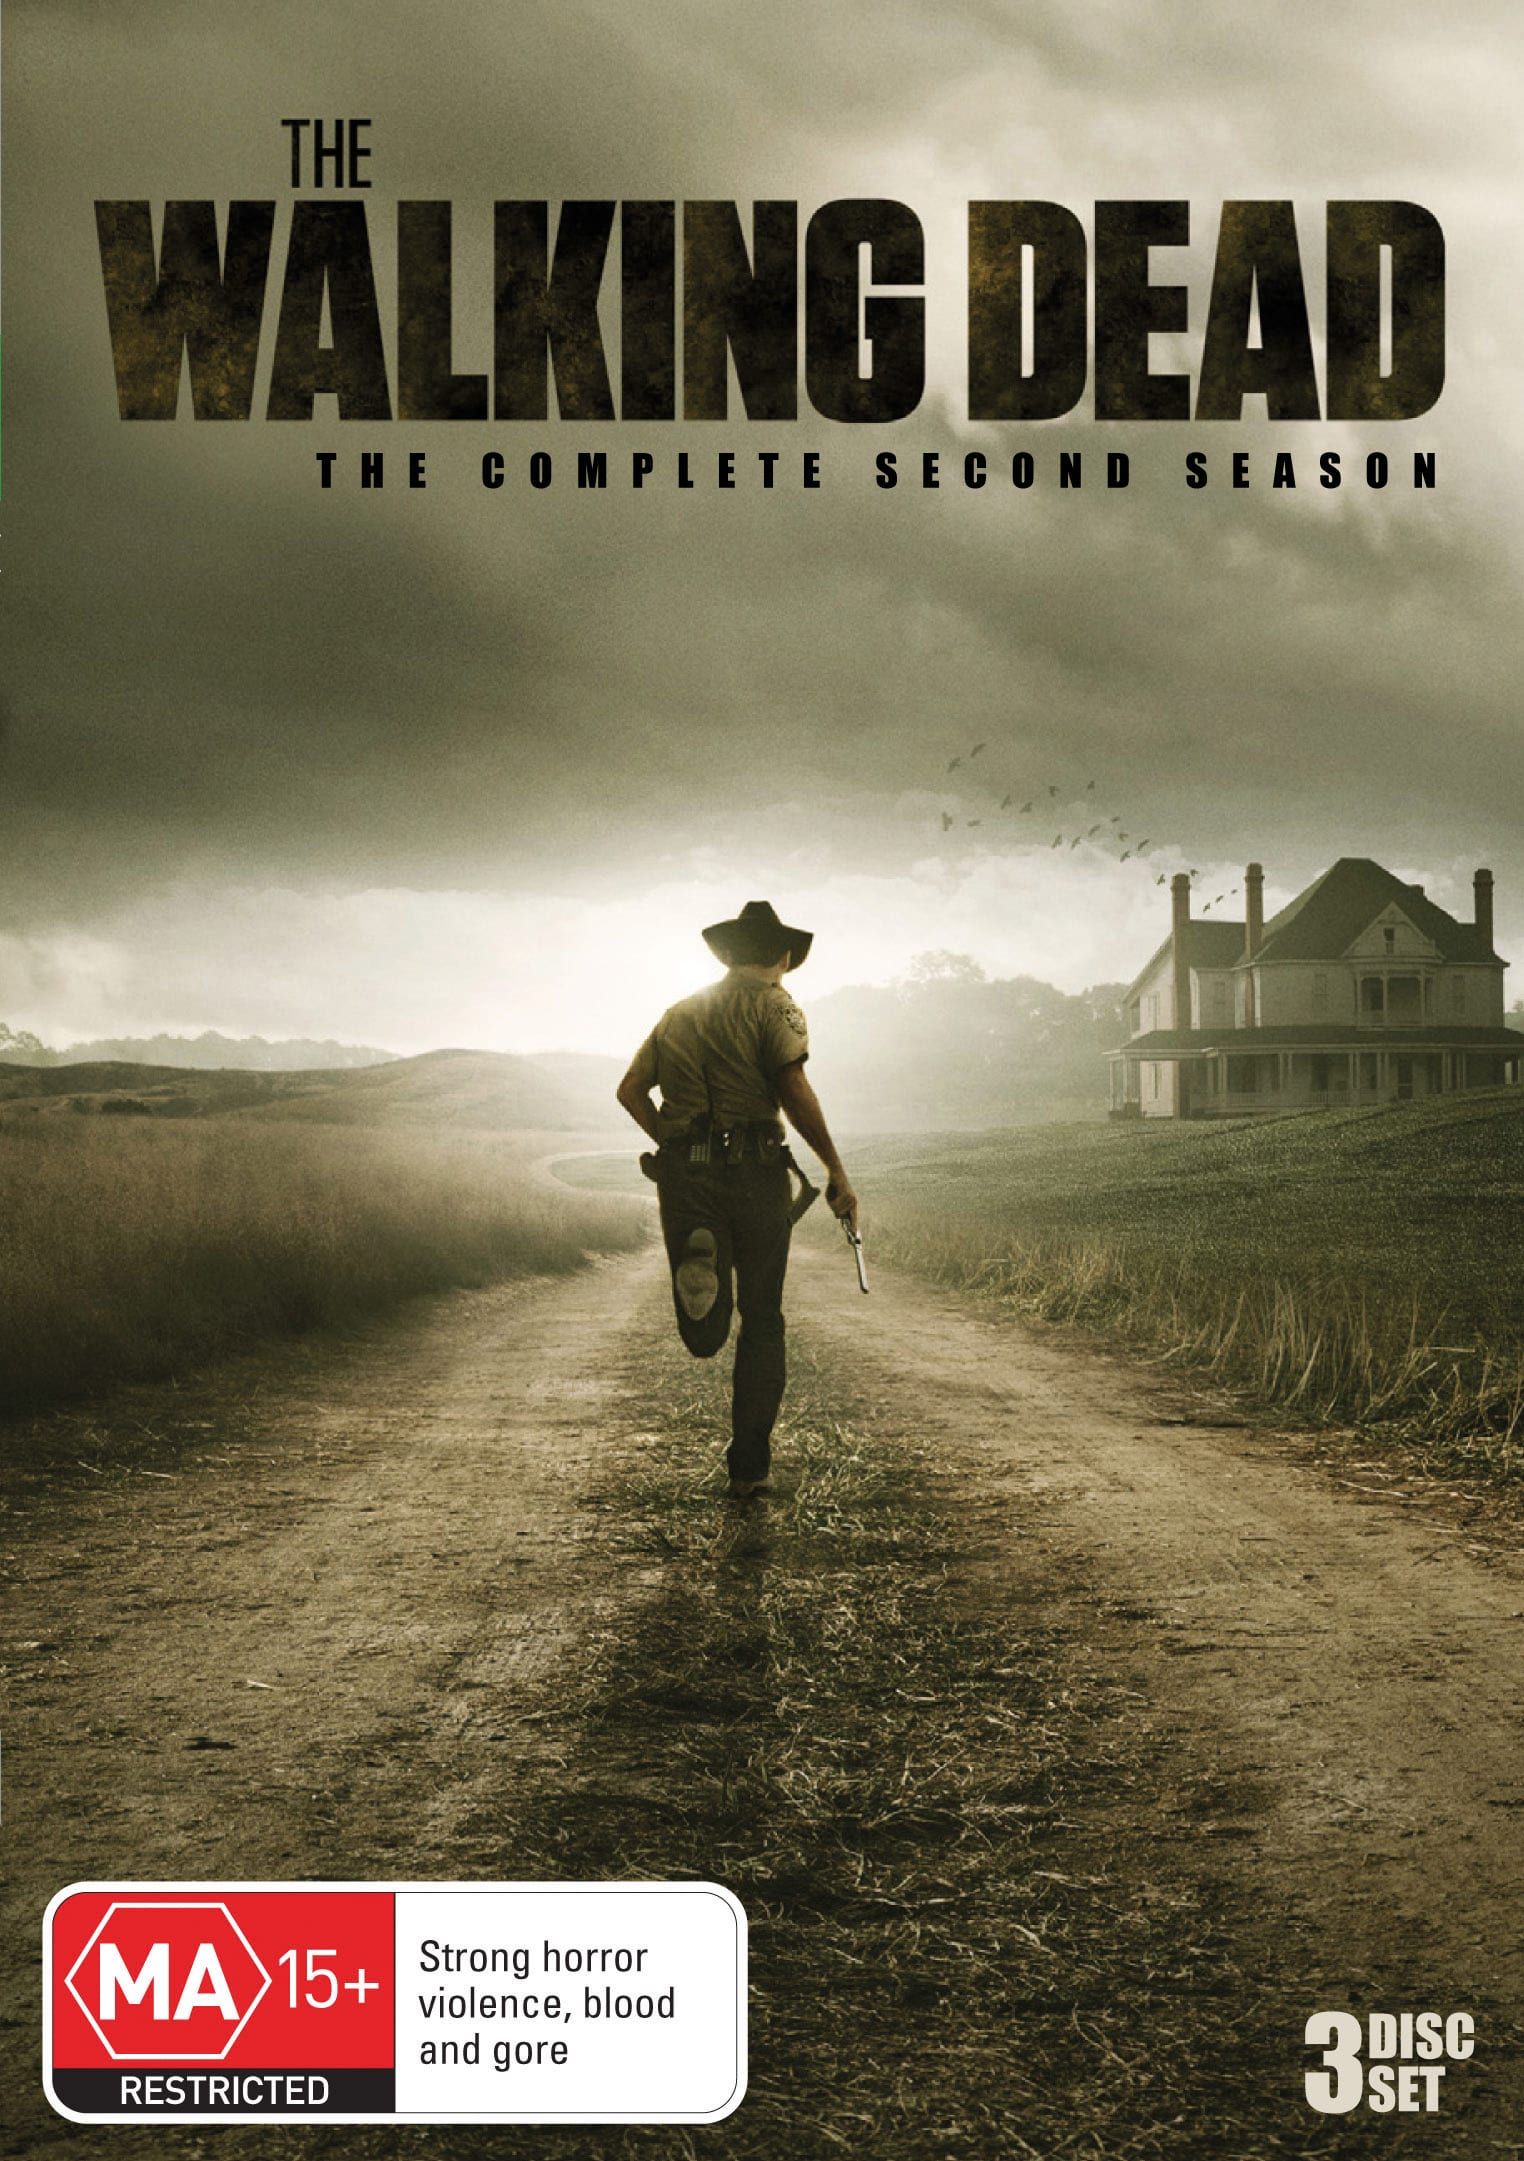 The Walking Dead: The Complete Second Season (Box Set) [DVD]